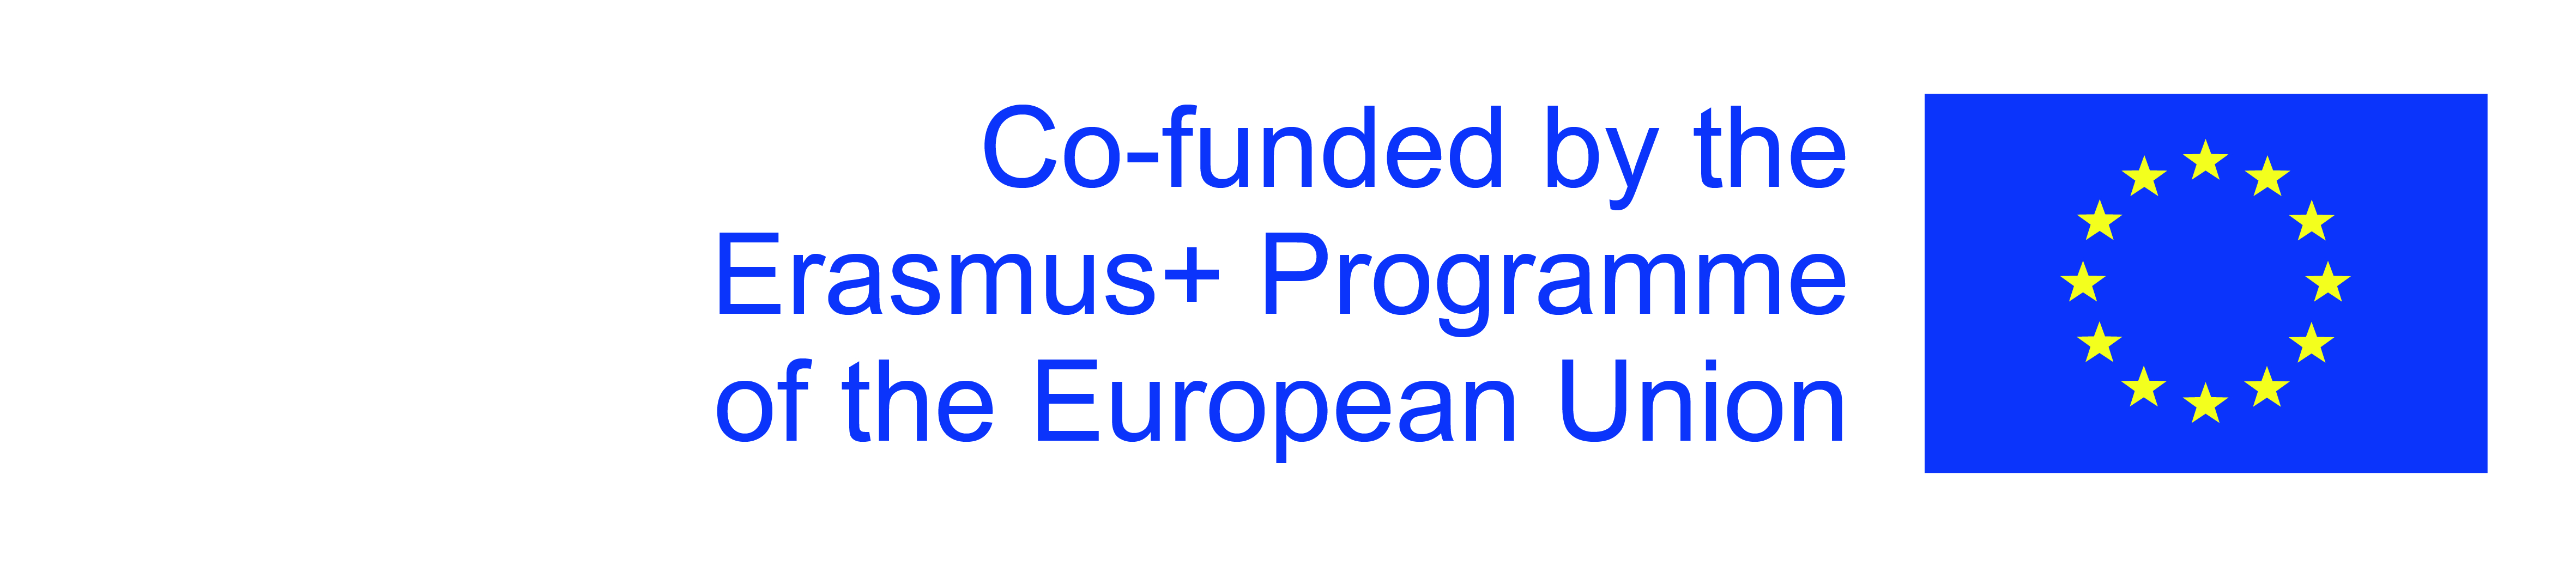 Co funded by the Erasmus+ Programme of the European Union